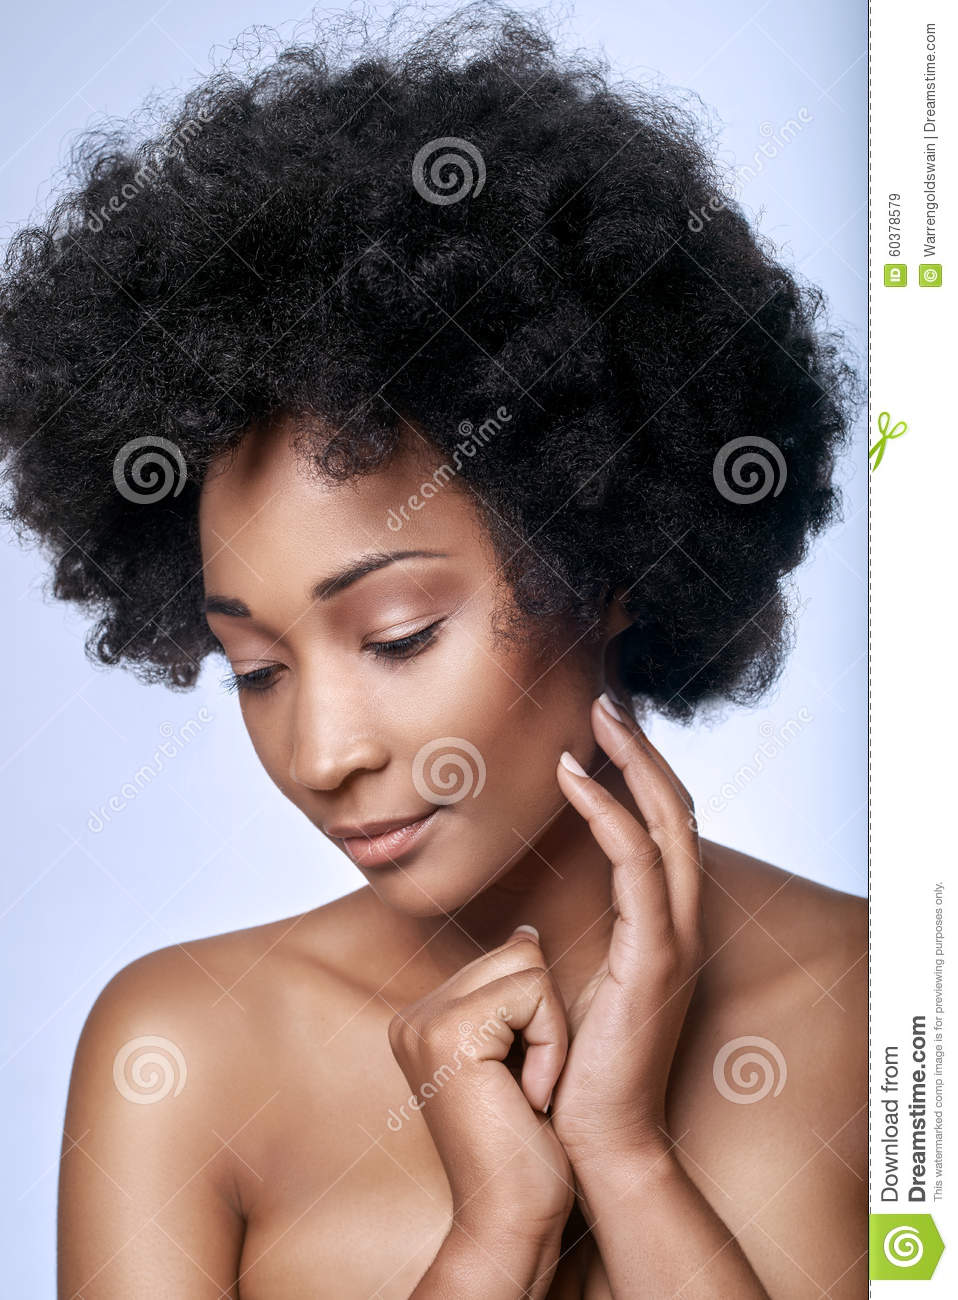 Download African Black Beauty In Studio Stock Image - Image of curly, model: 60378579